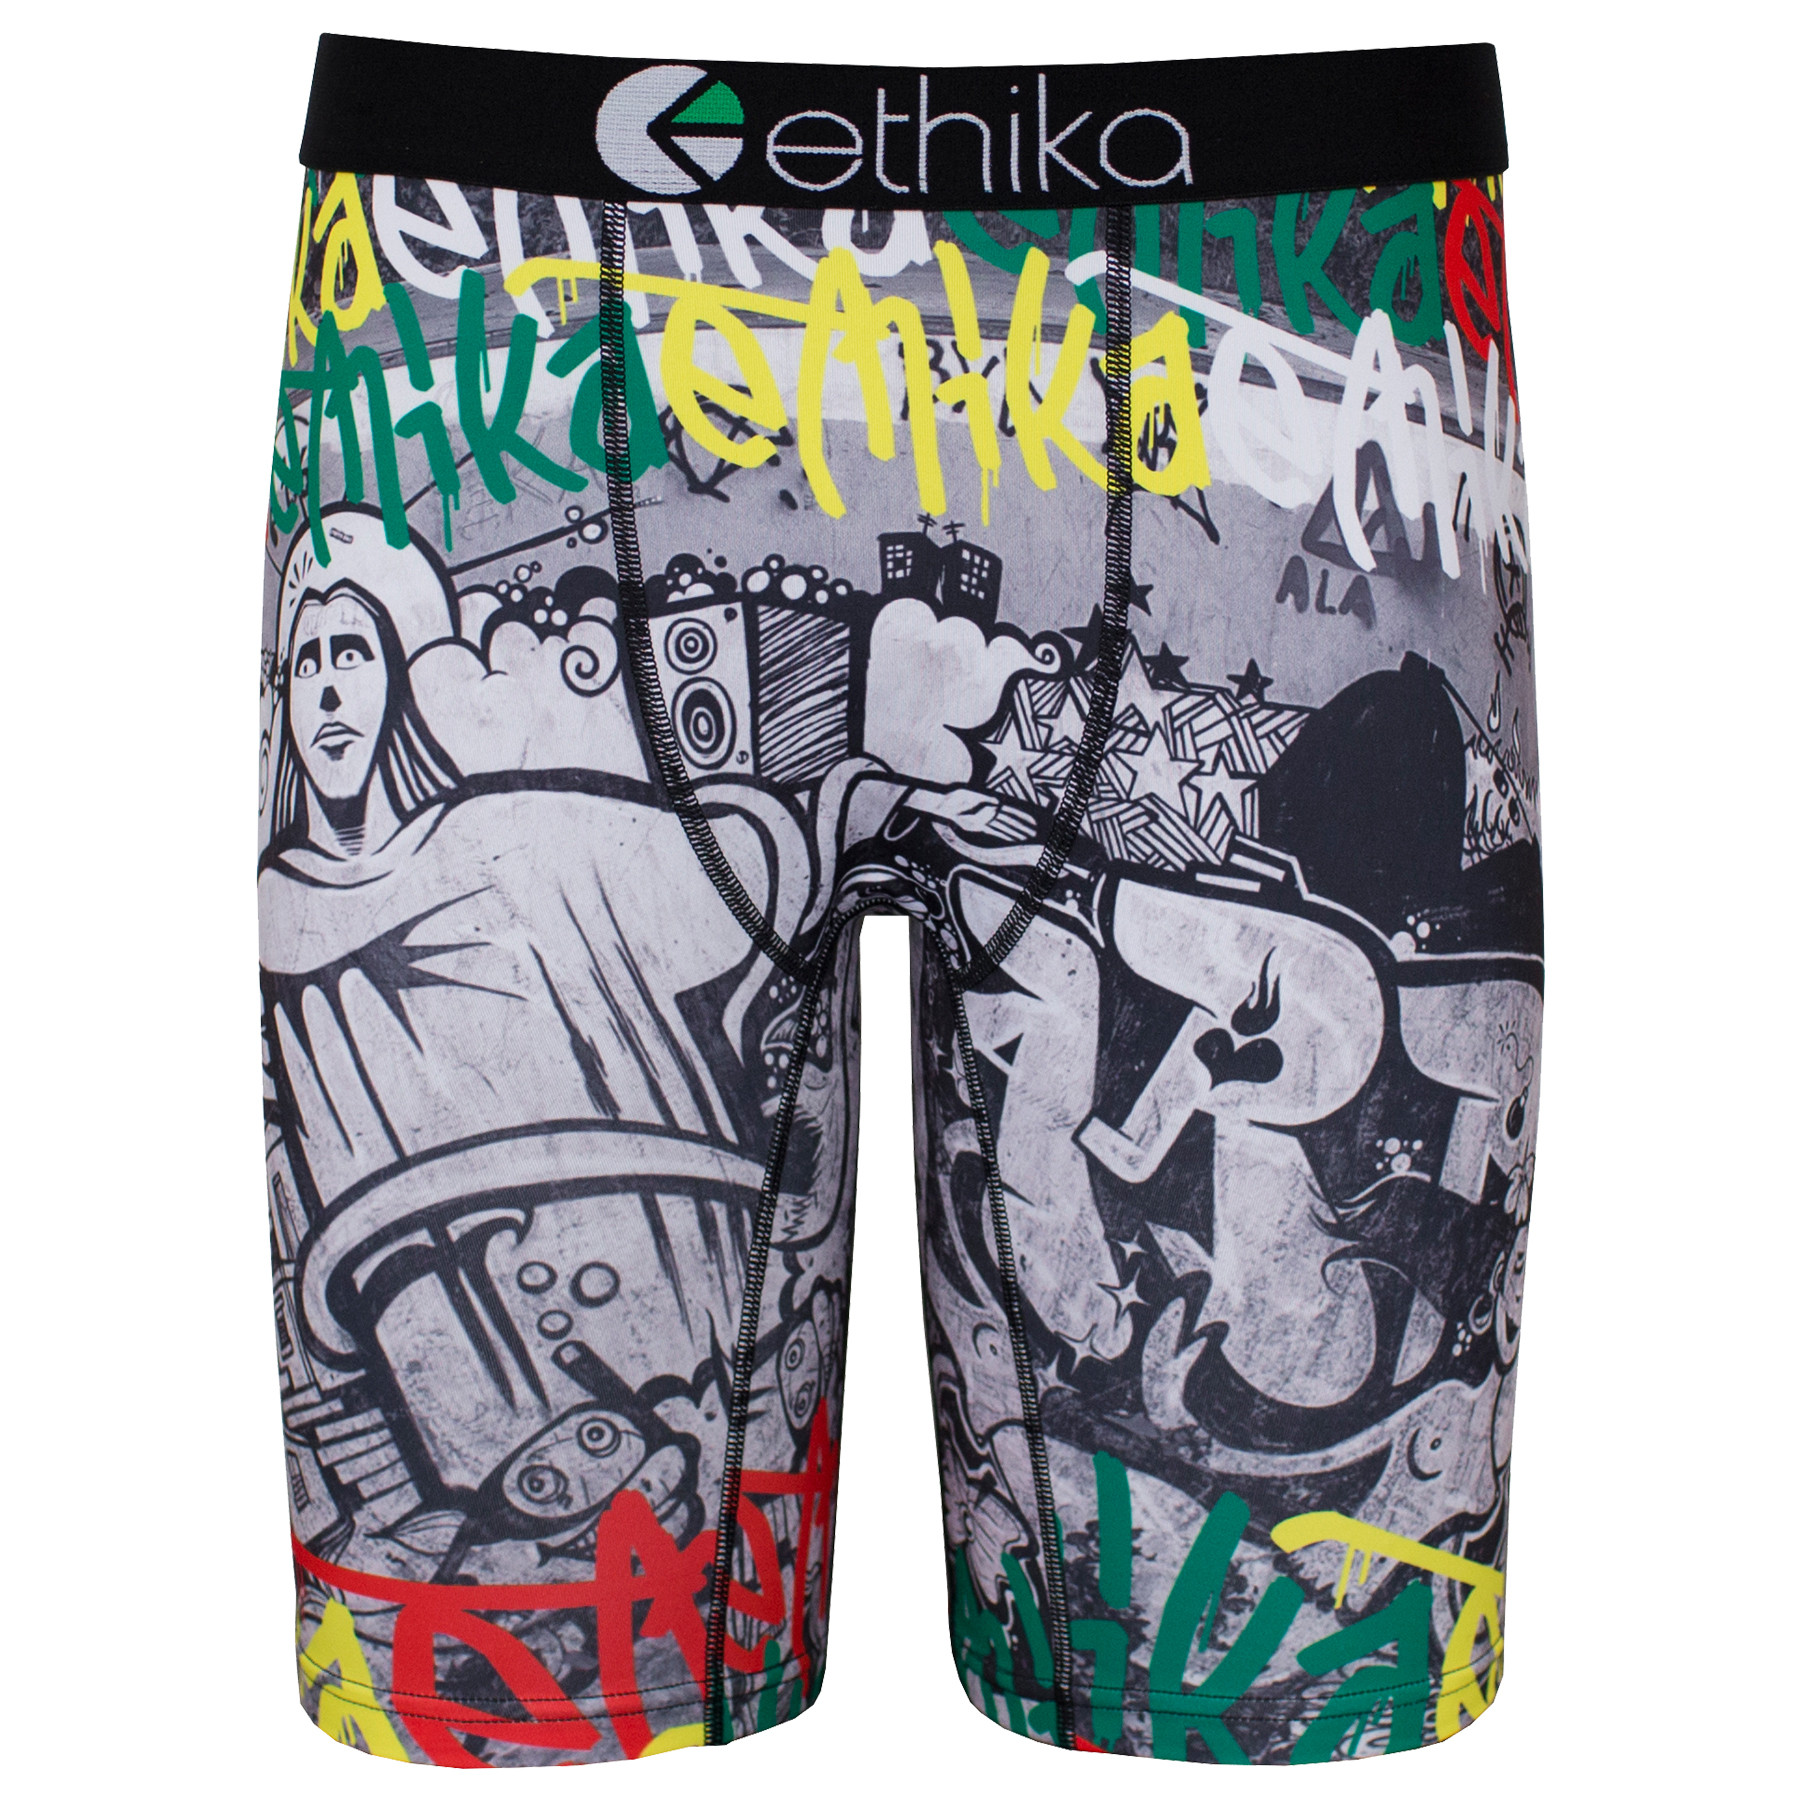 Ethika Rio- Yellow/green